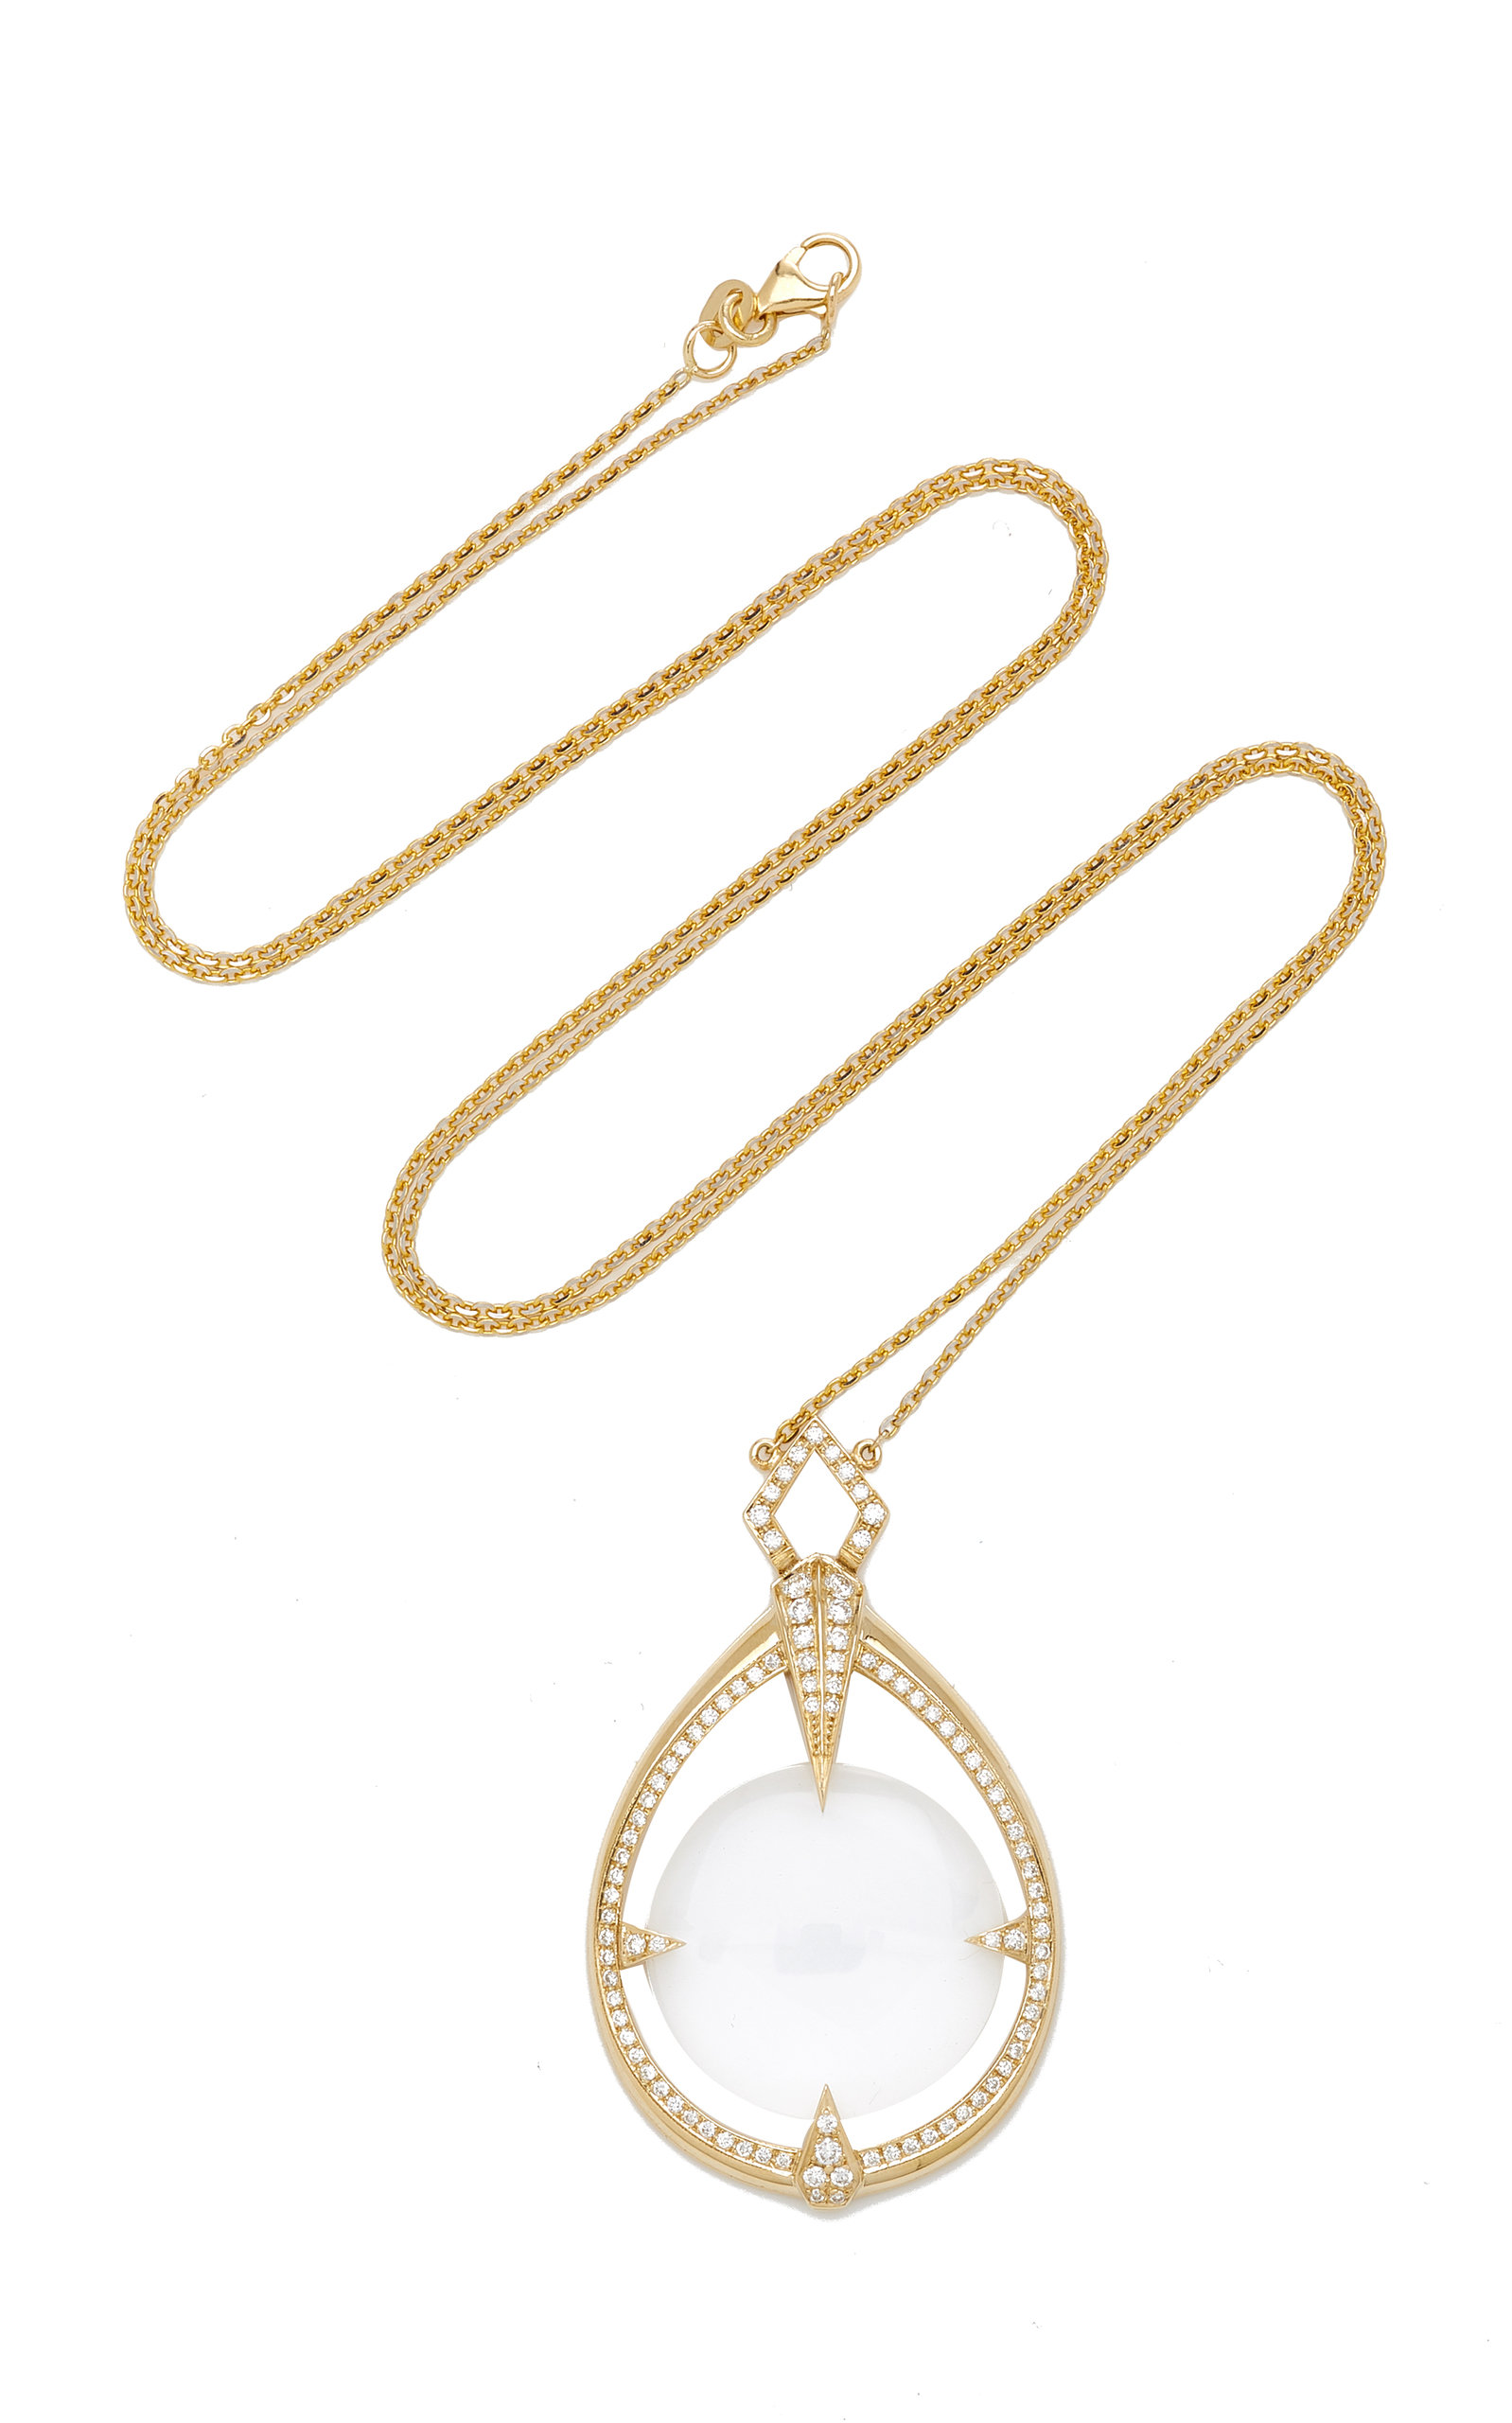 Hourglass pendant necklace by ele karela moda operandi loading mozeypictures Image collections